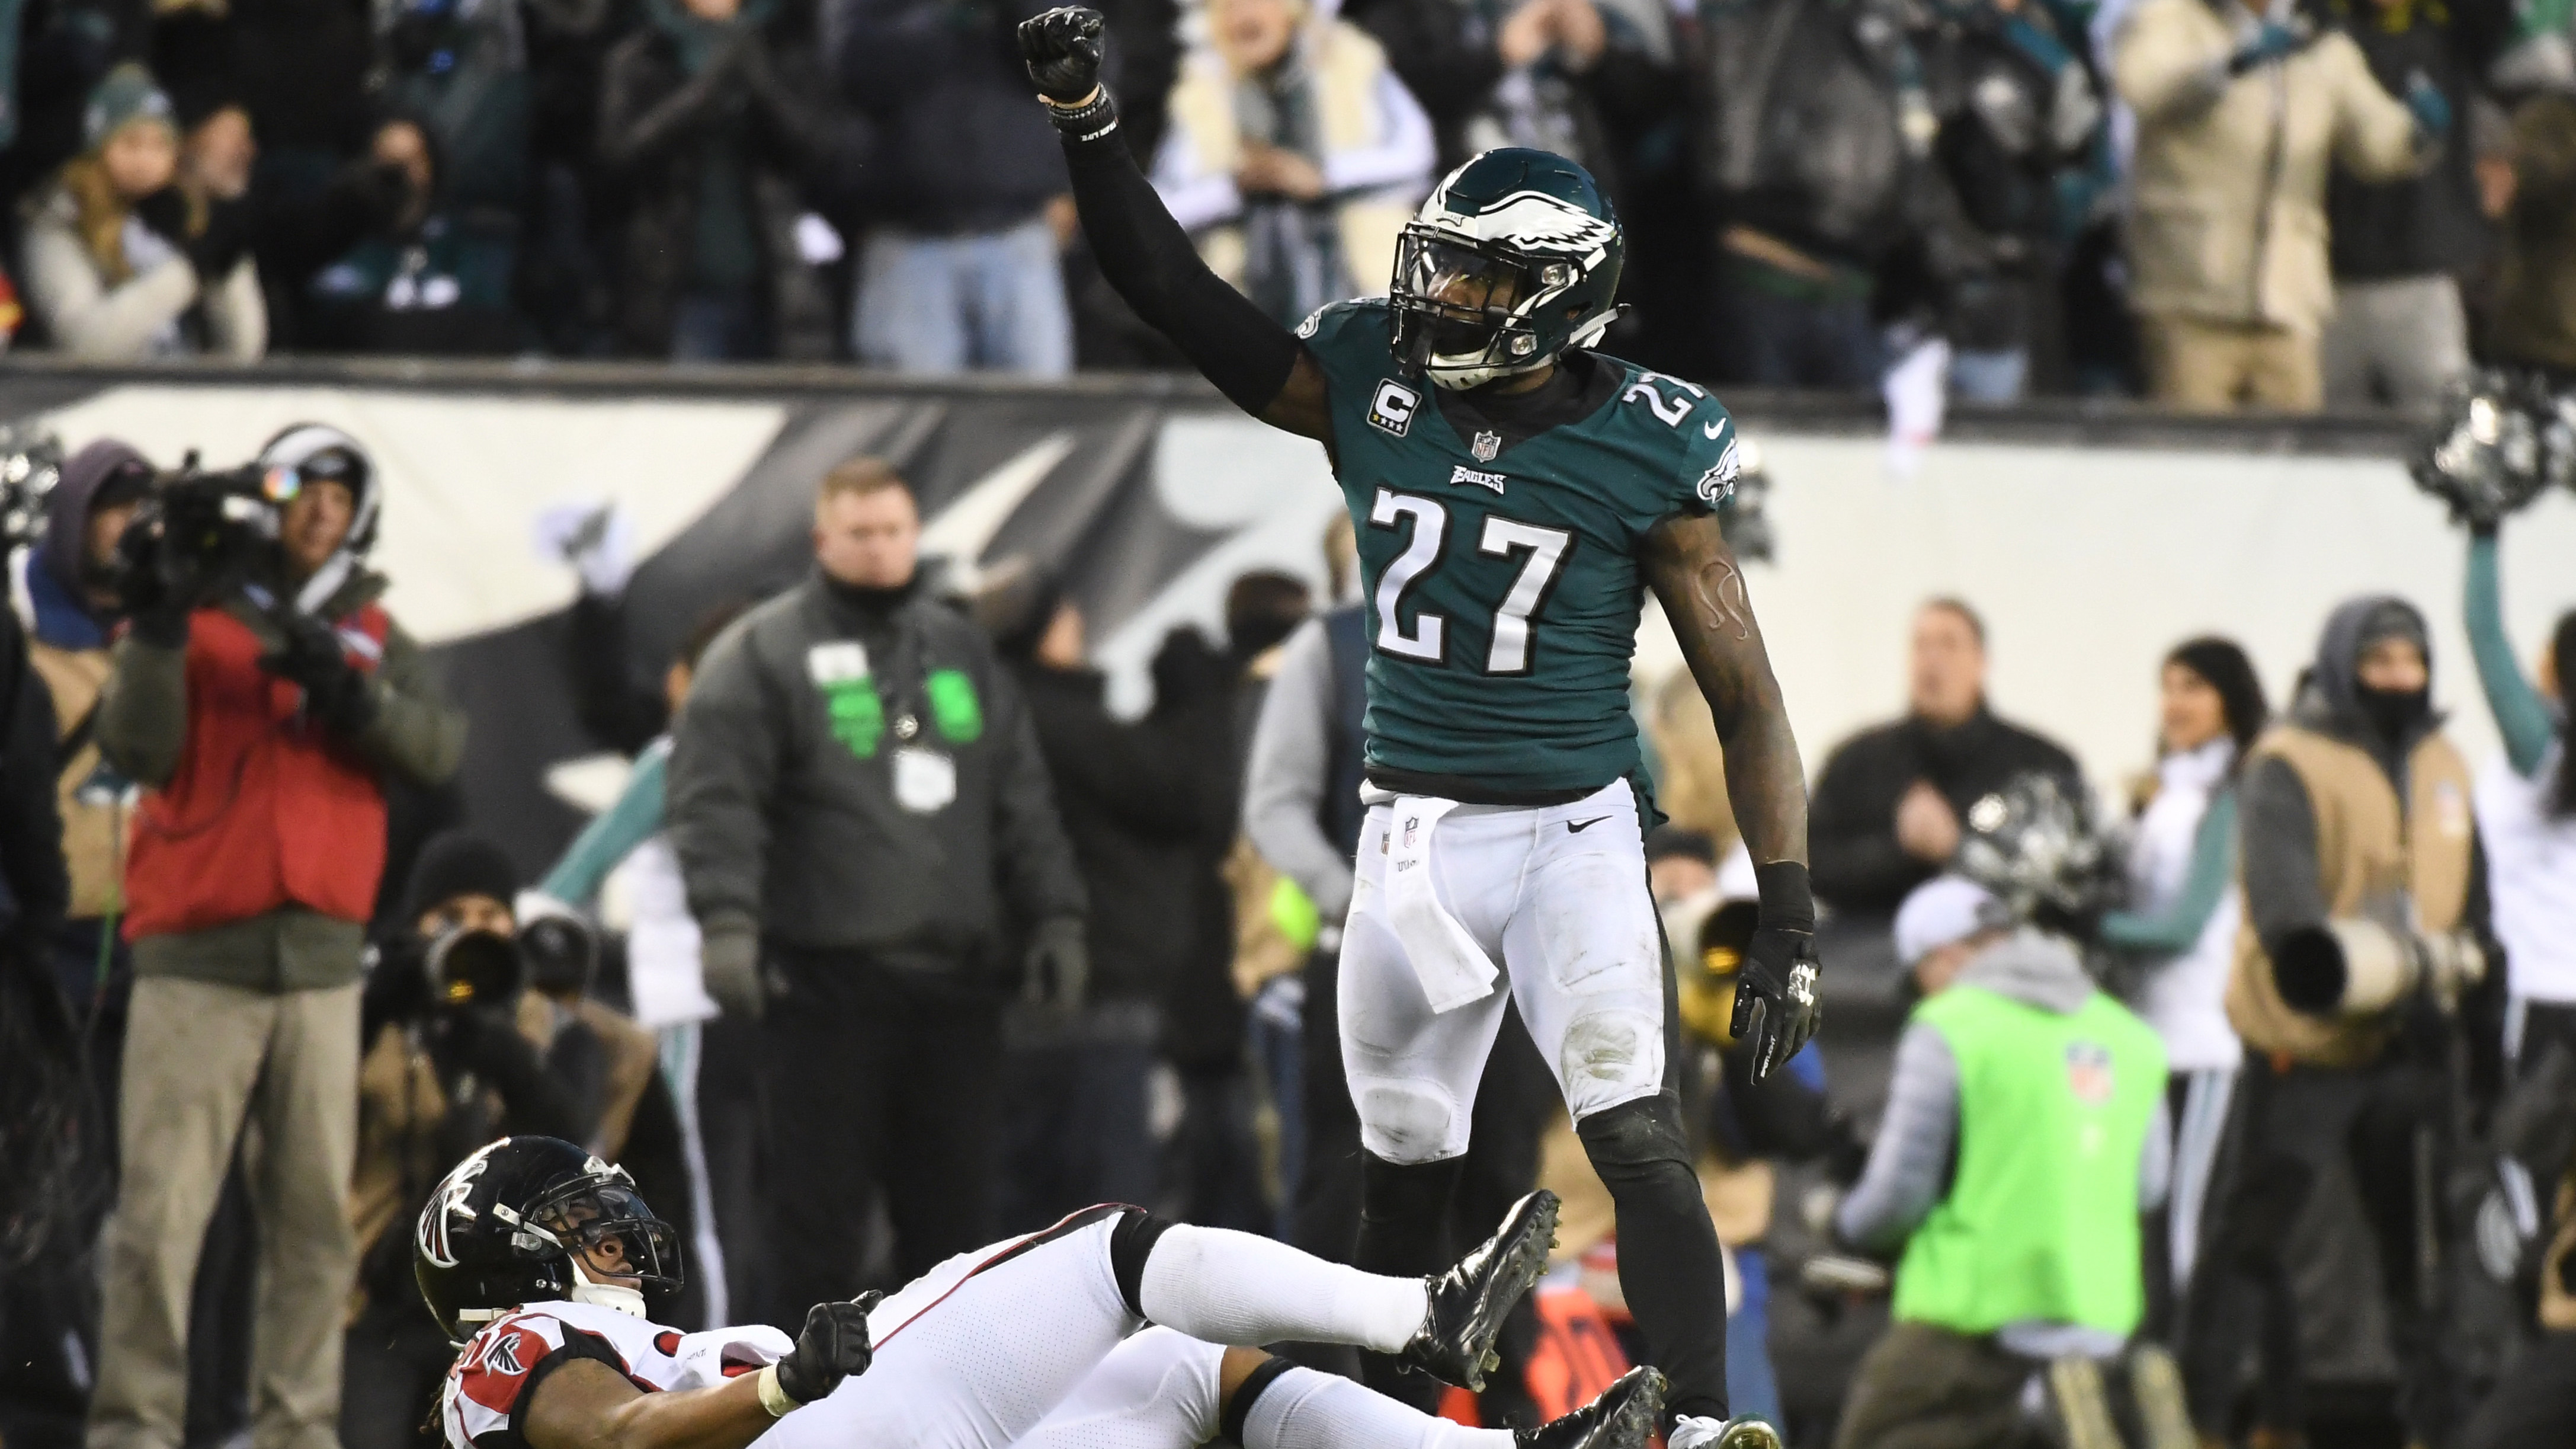 NFL: JAN 13 NFC Divisional Playoff  Falcons at Eagles